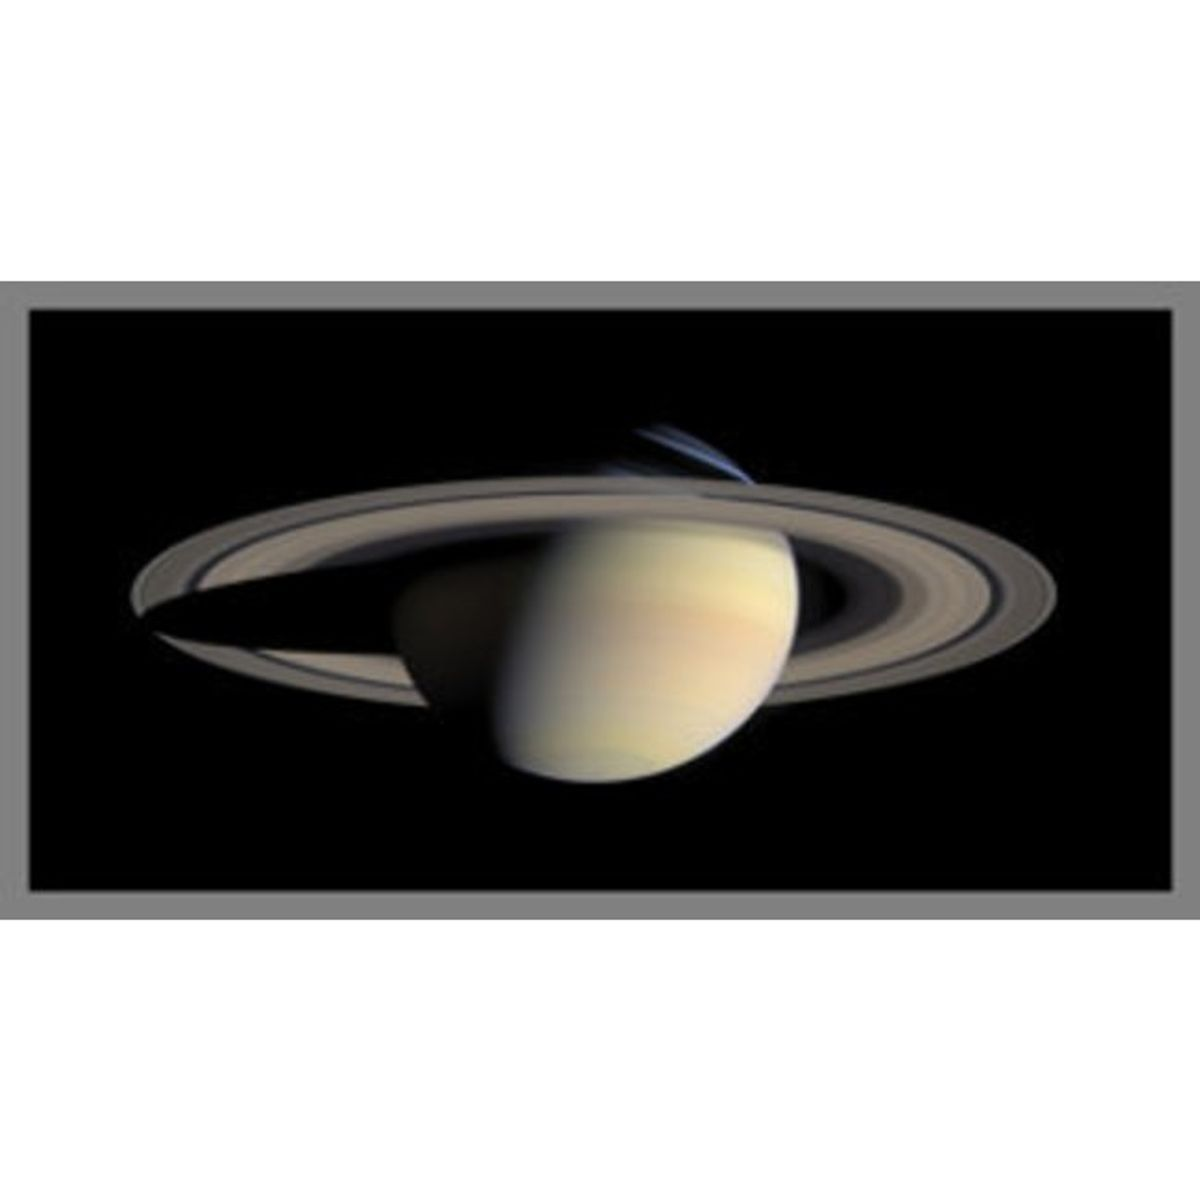 Saturn: You're GROUNDED